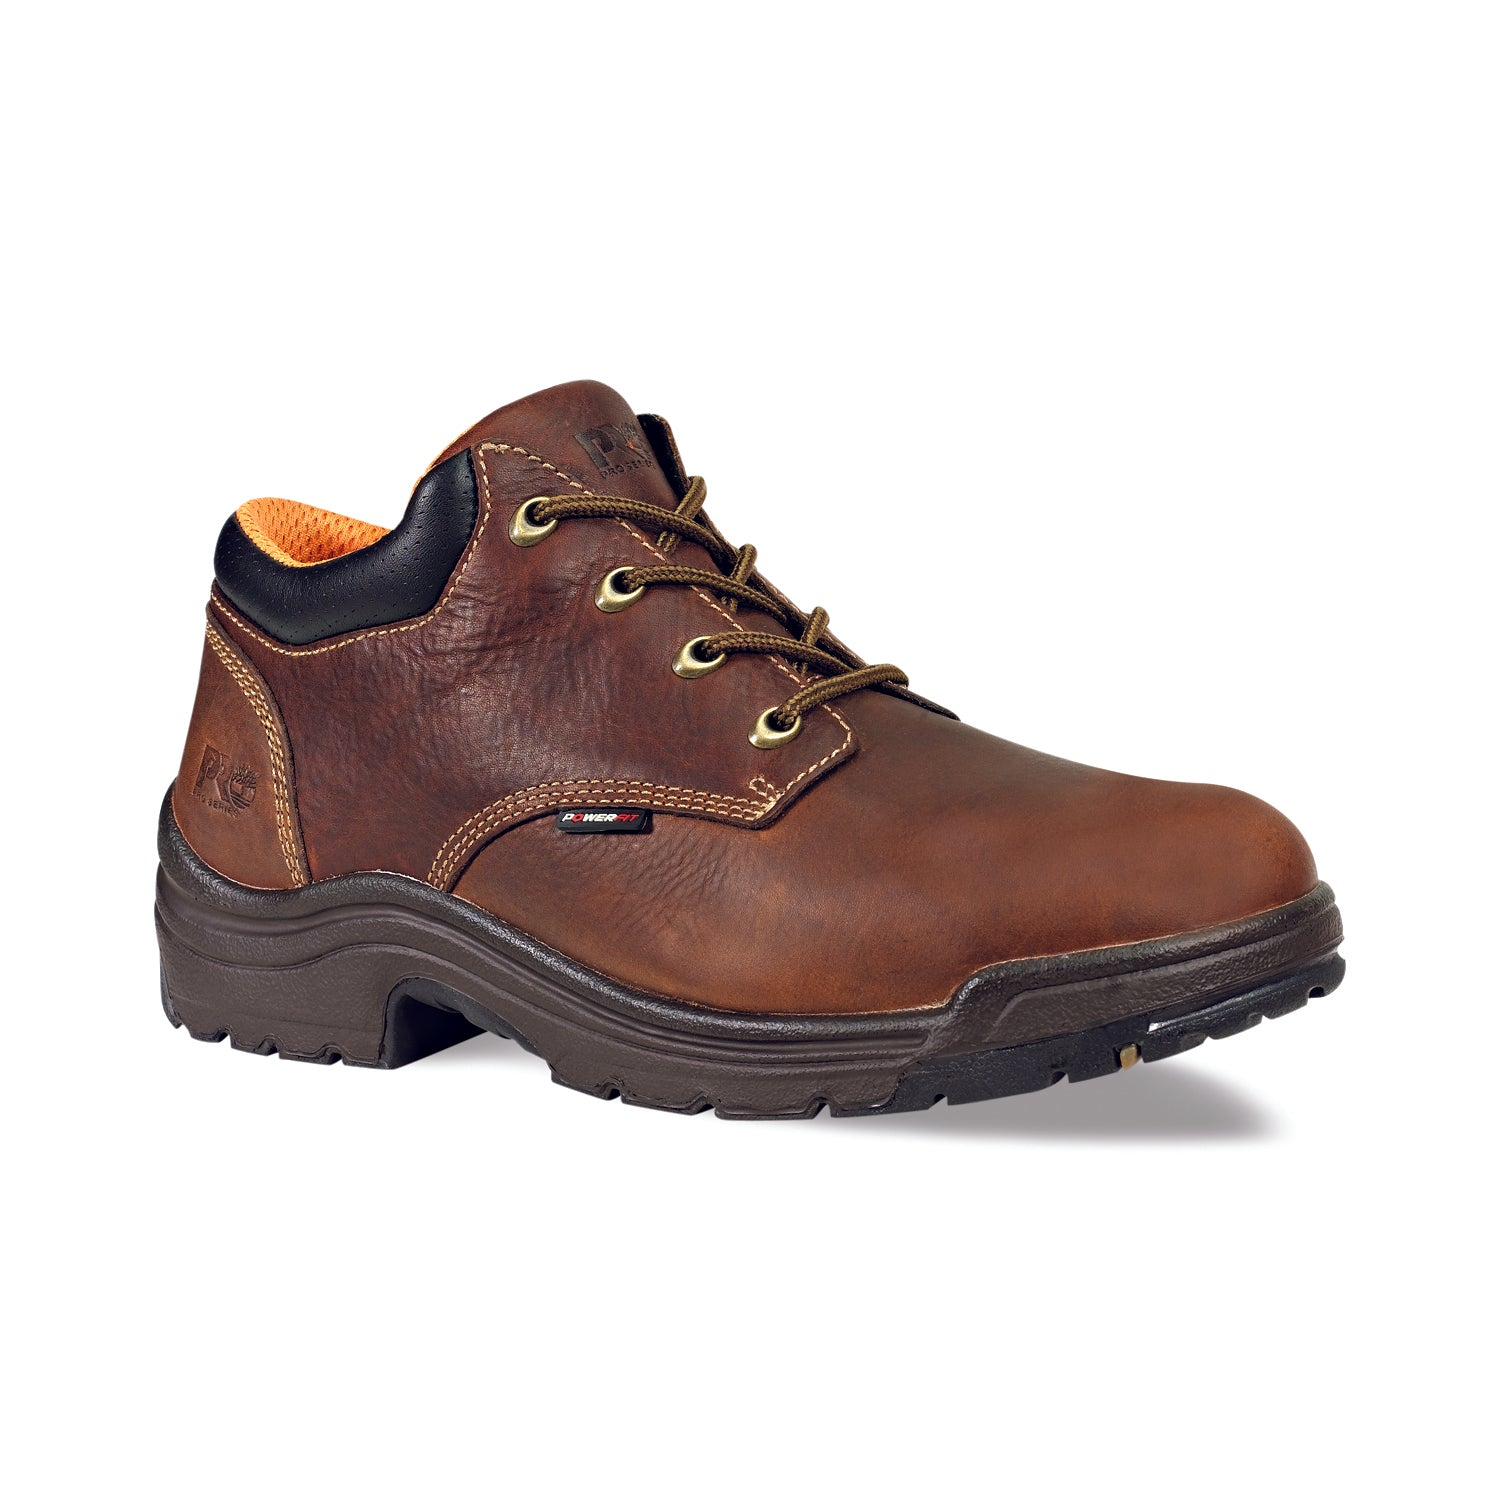 Timberland Pro TITAN OXFORD - 47028 - 47028-BROWN